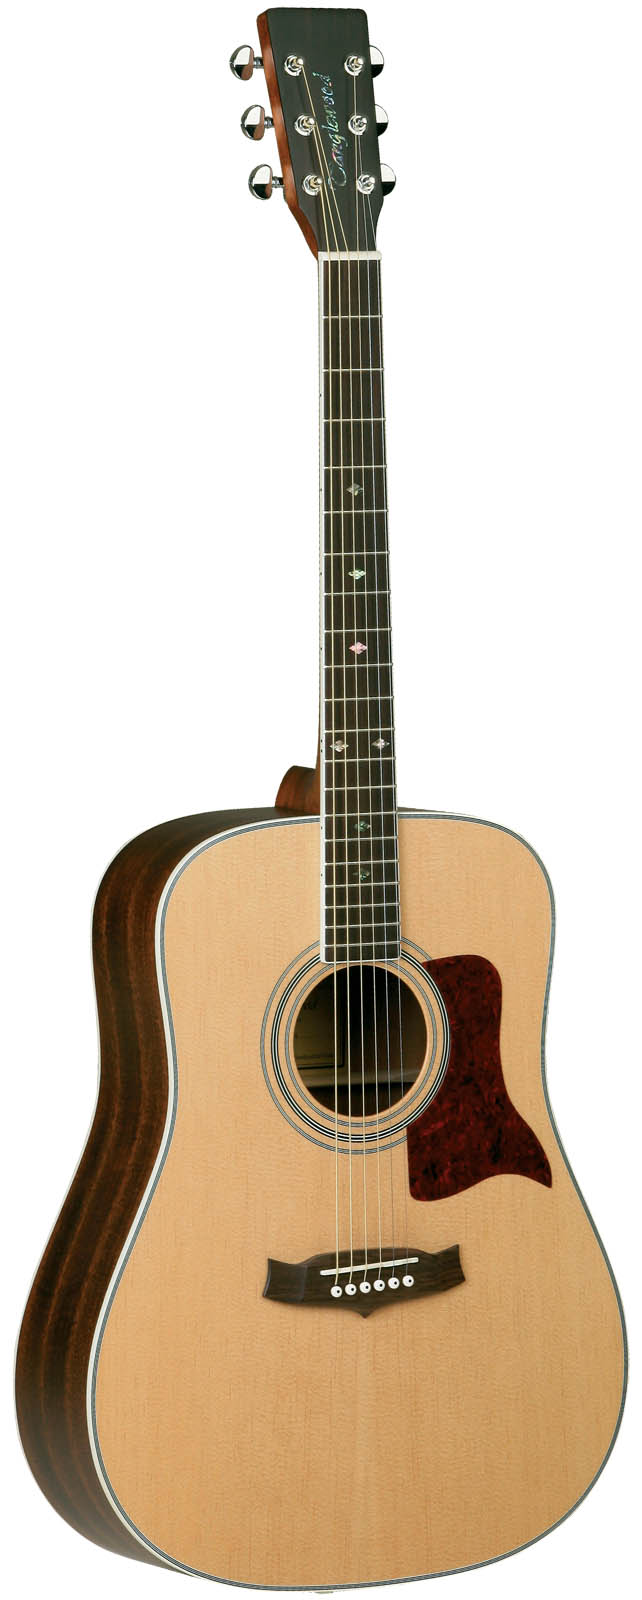 tanglewood tw15 ns dreadnought guitar discount music center orlando. Black Bedroom Furniture Sets. Home Design Ideas